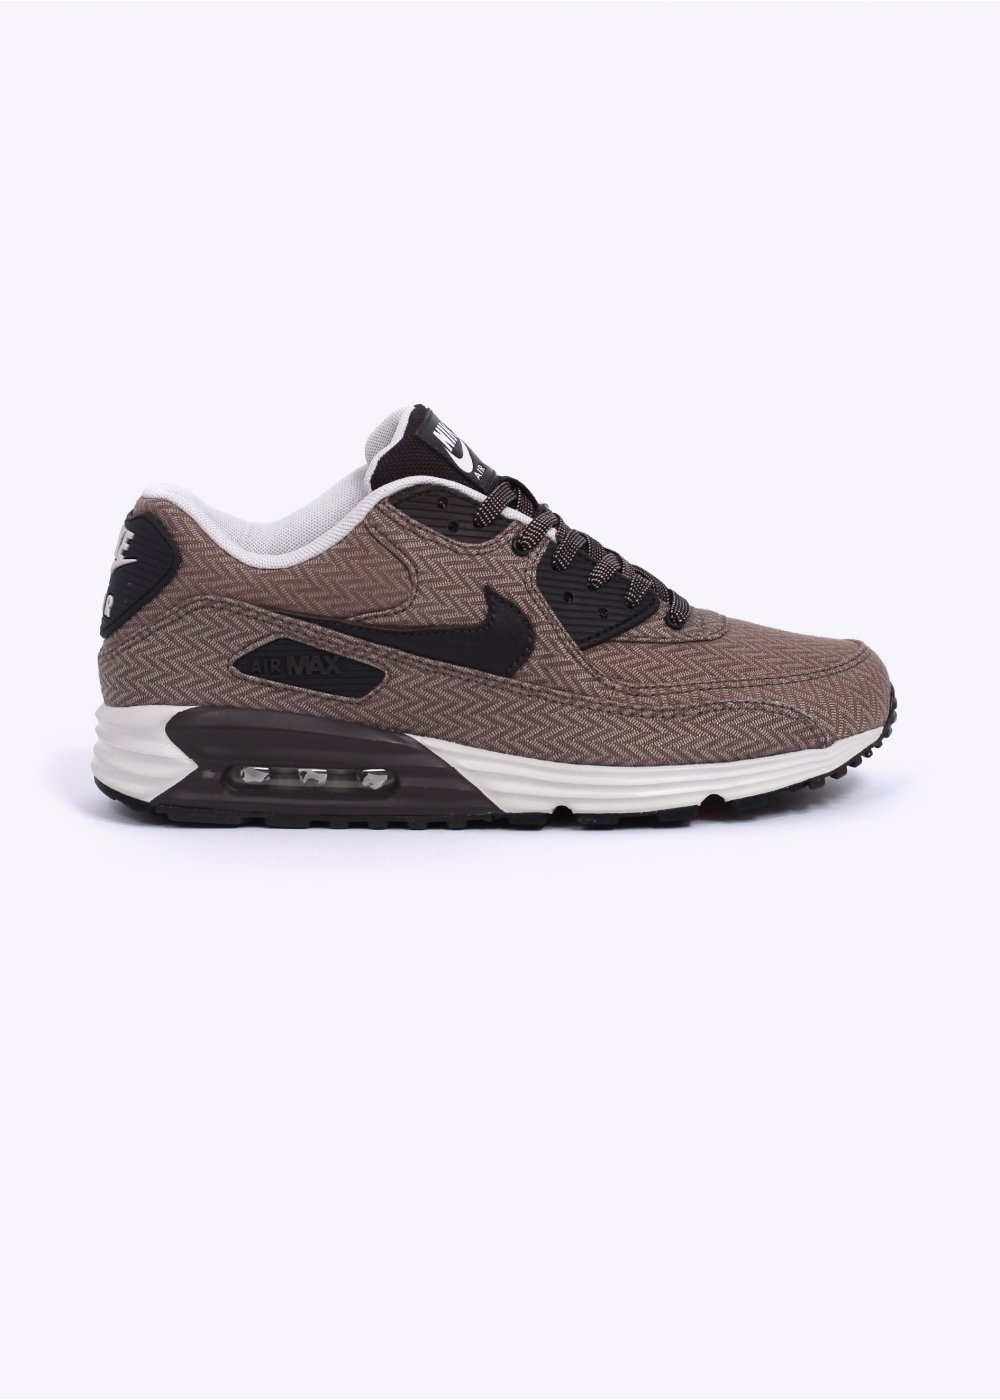 dad2ad394a Nike Air Max Lunar 90 'Suit & Tie' PRM QS Trainers - Dark Dune ...